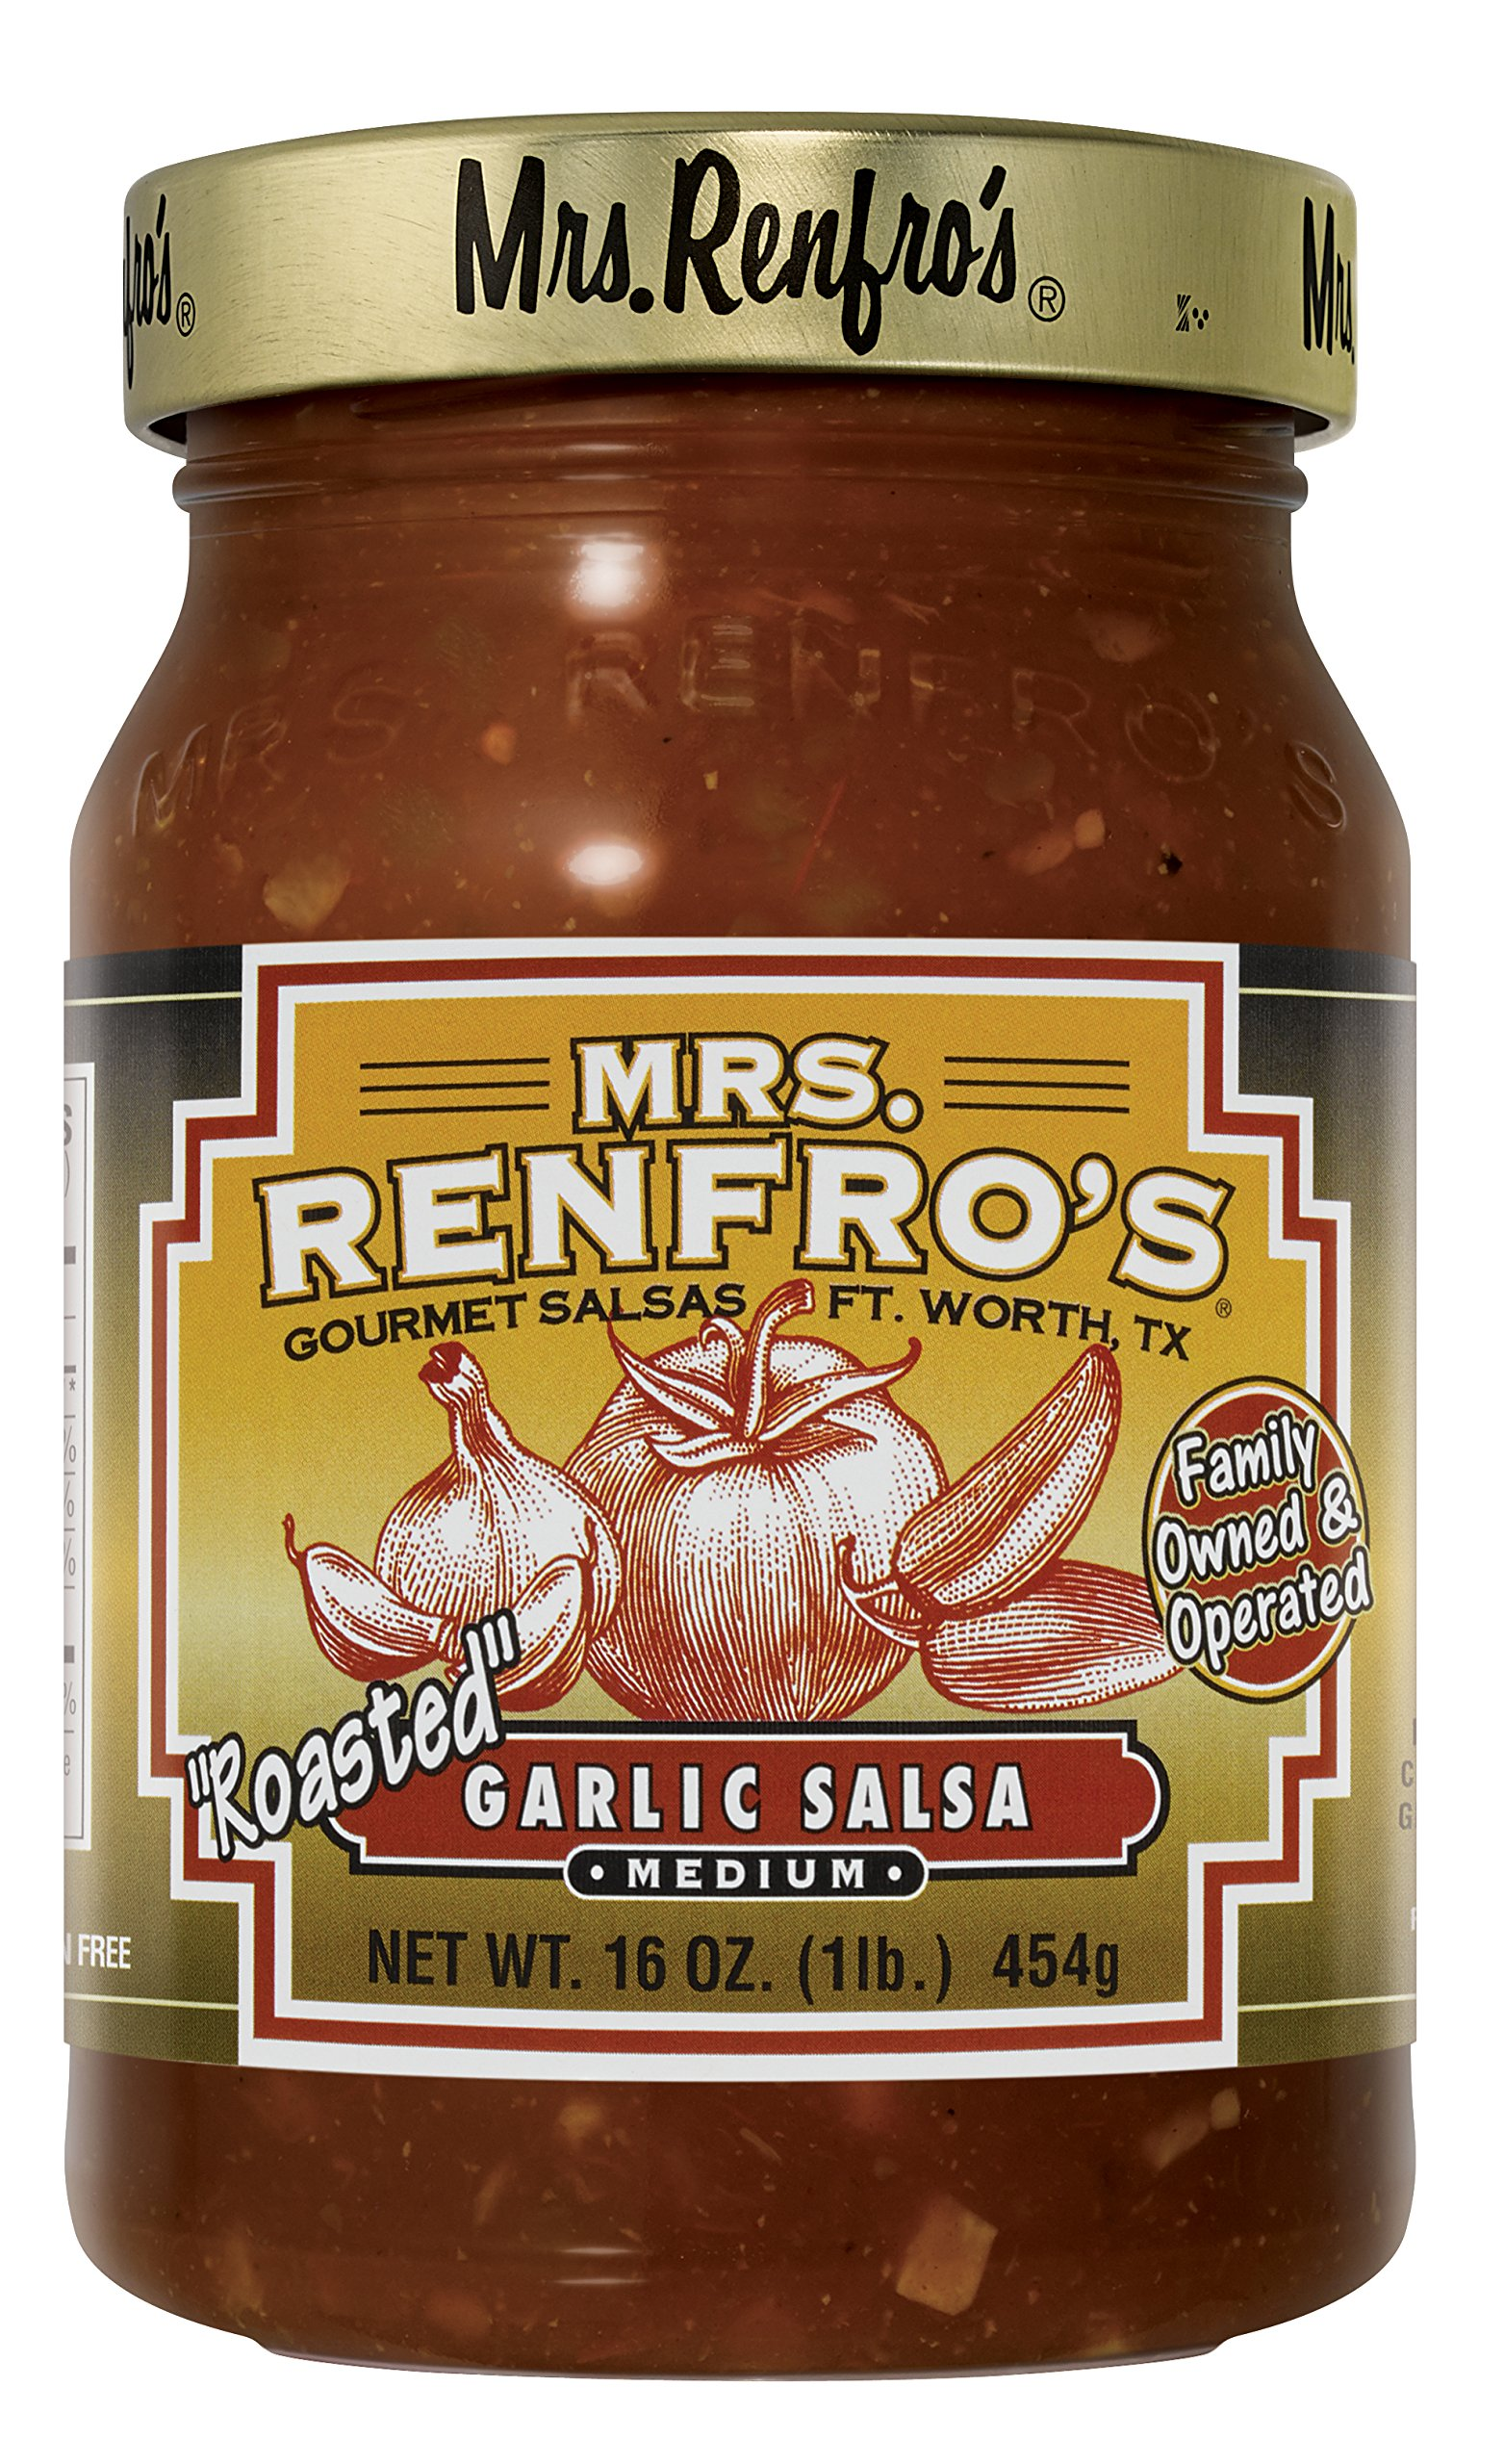 Mrs. Renfro's Garlic Salsa, 16 oz (4 Pack) by Mrs. Renfro's